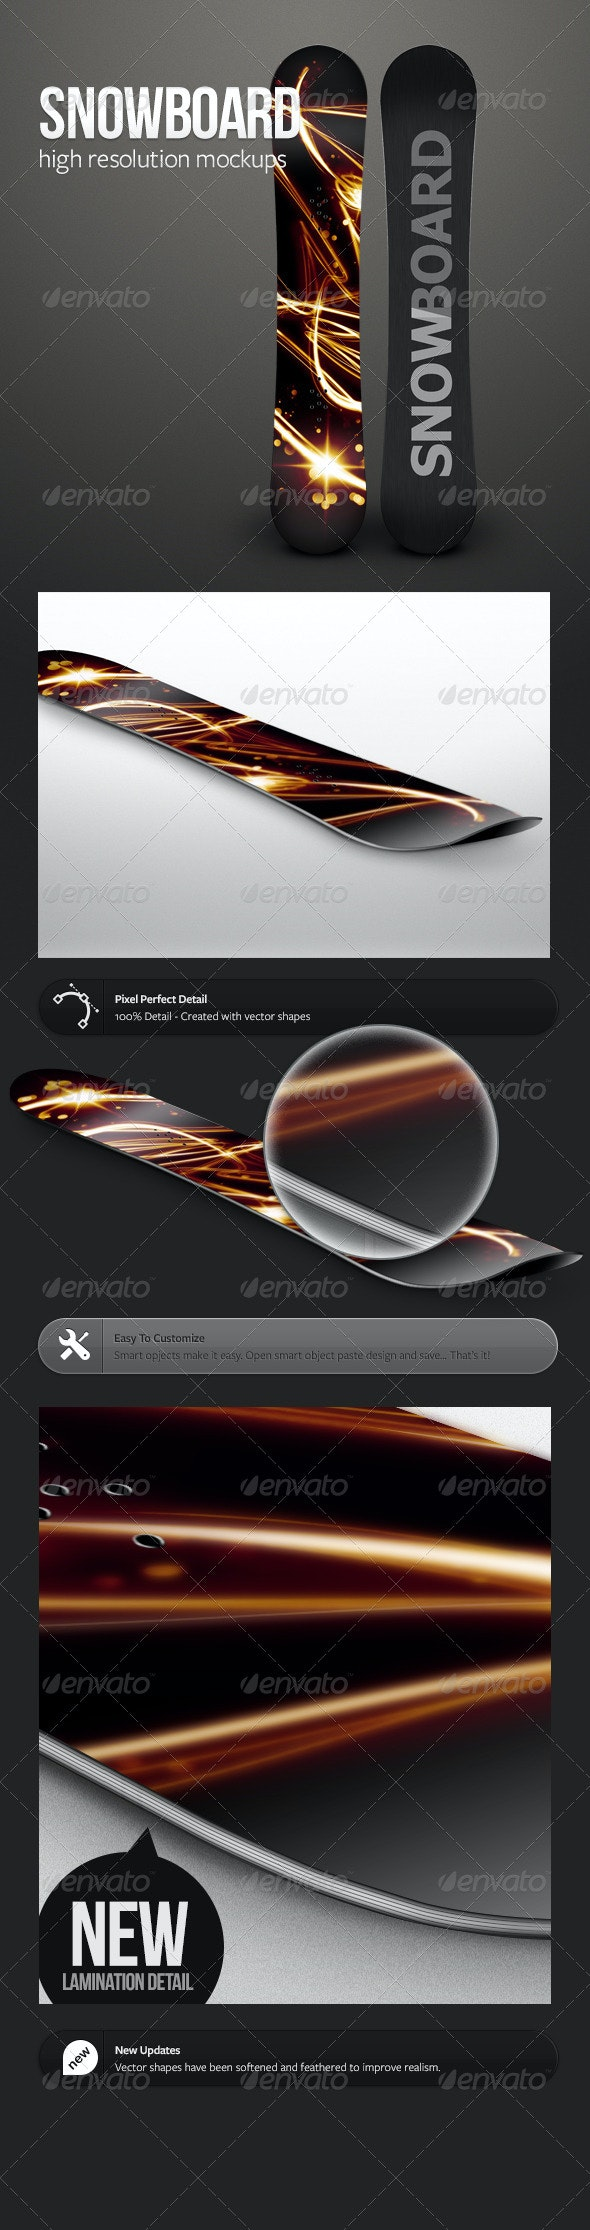 Snowboard Mockups - Miscellaneous Product Mock-Ups